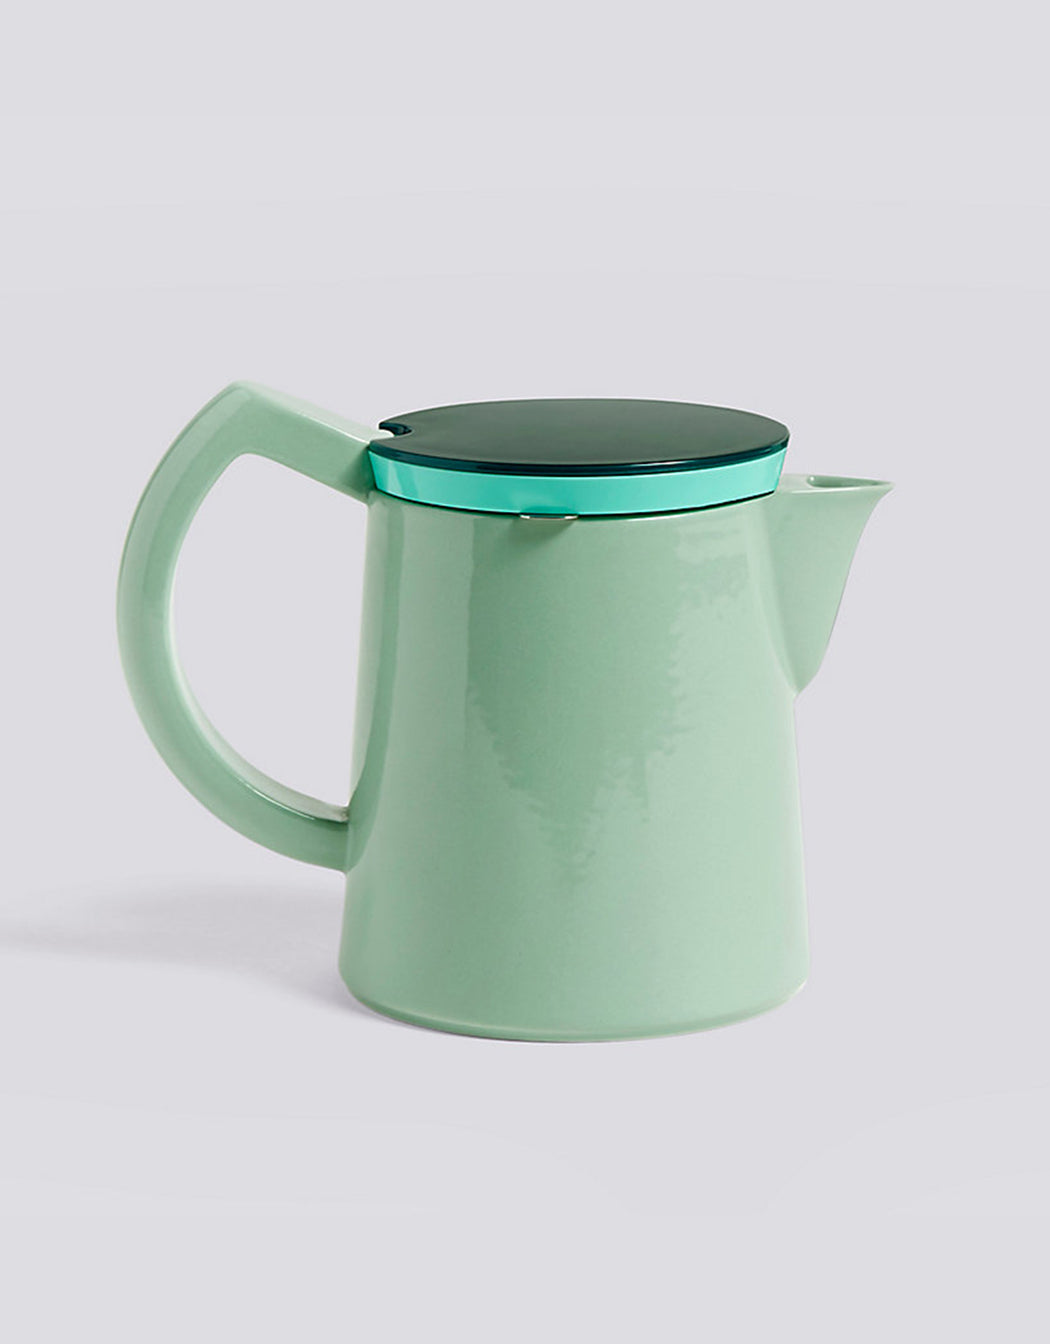 Sowden Coffee Pot in Mint from HAY brand. Available at Easy Tiger Goods Toronto.